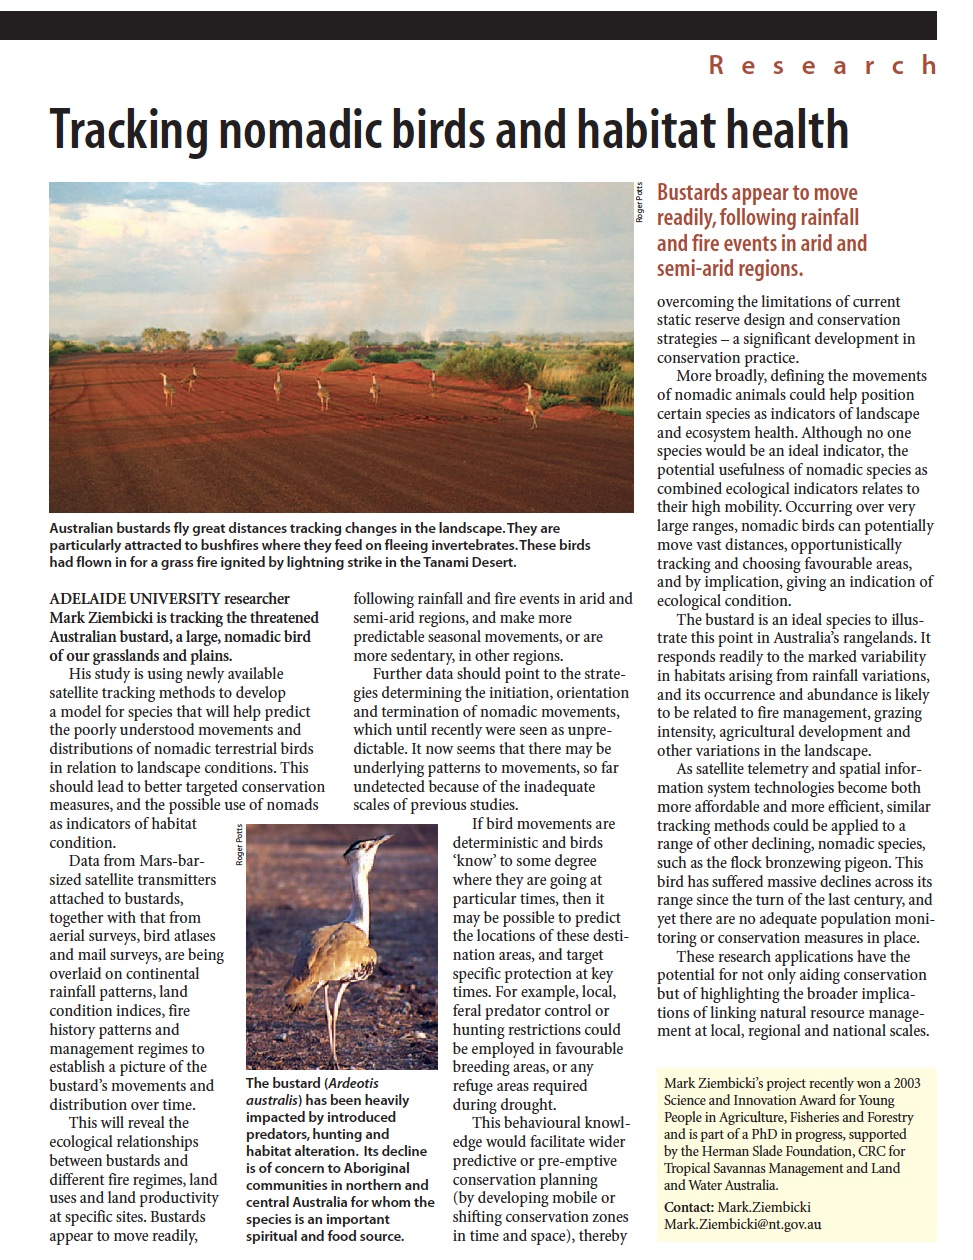 Article in  ECOS Magazine (Issue 117)